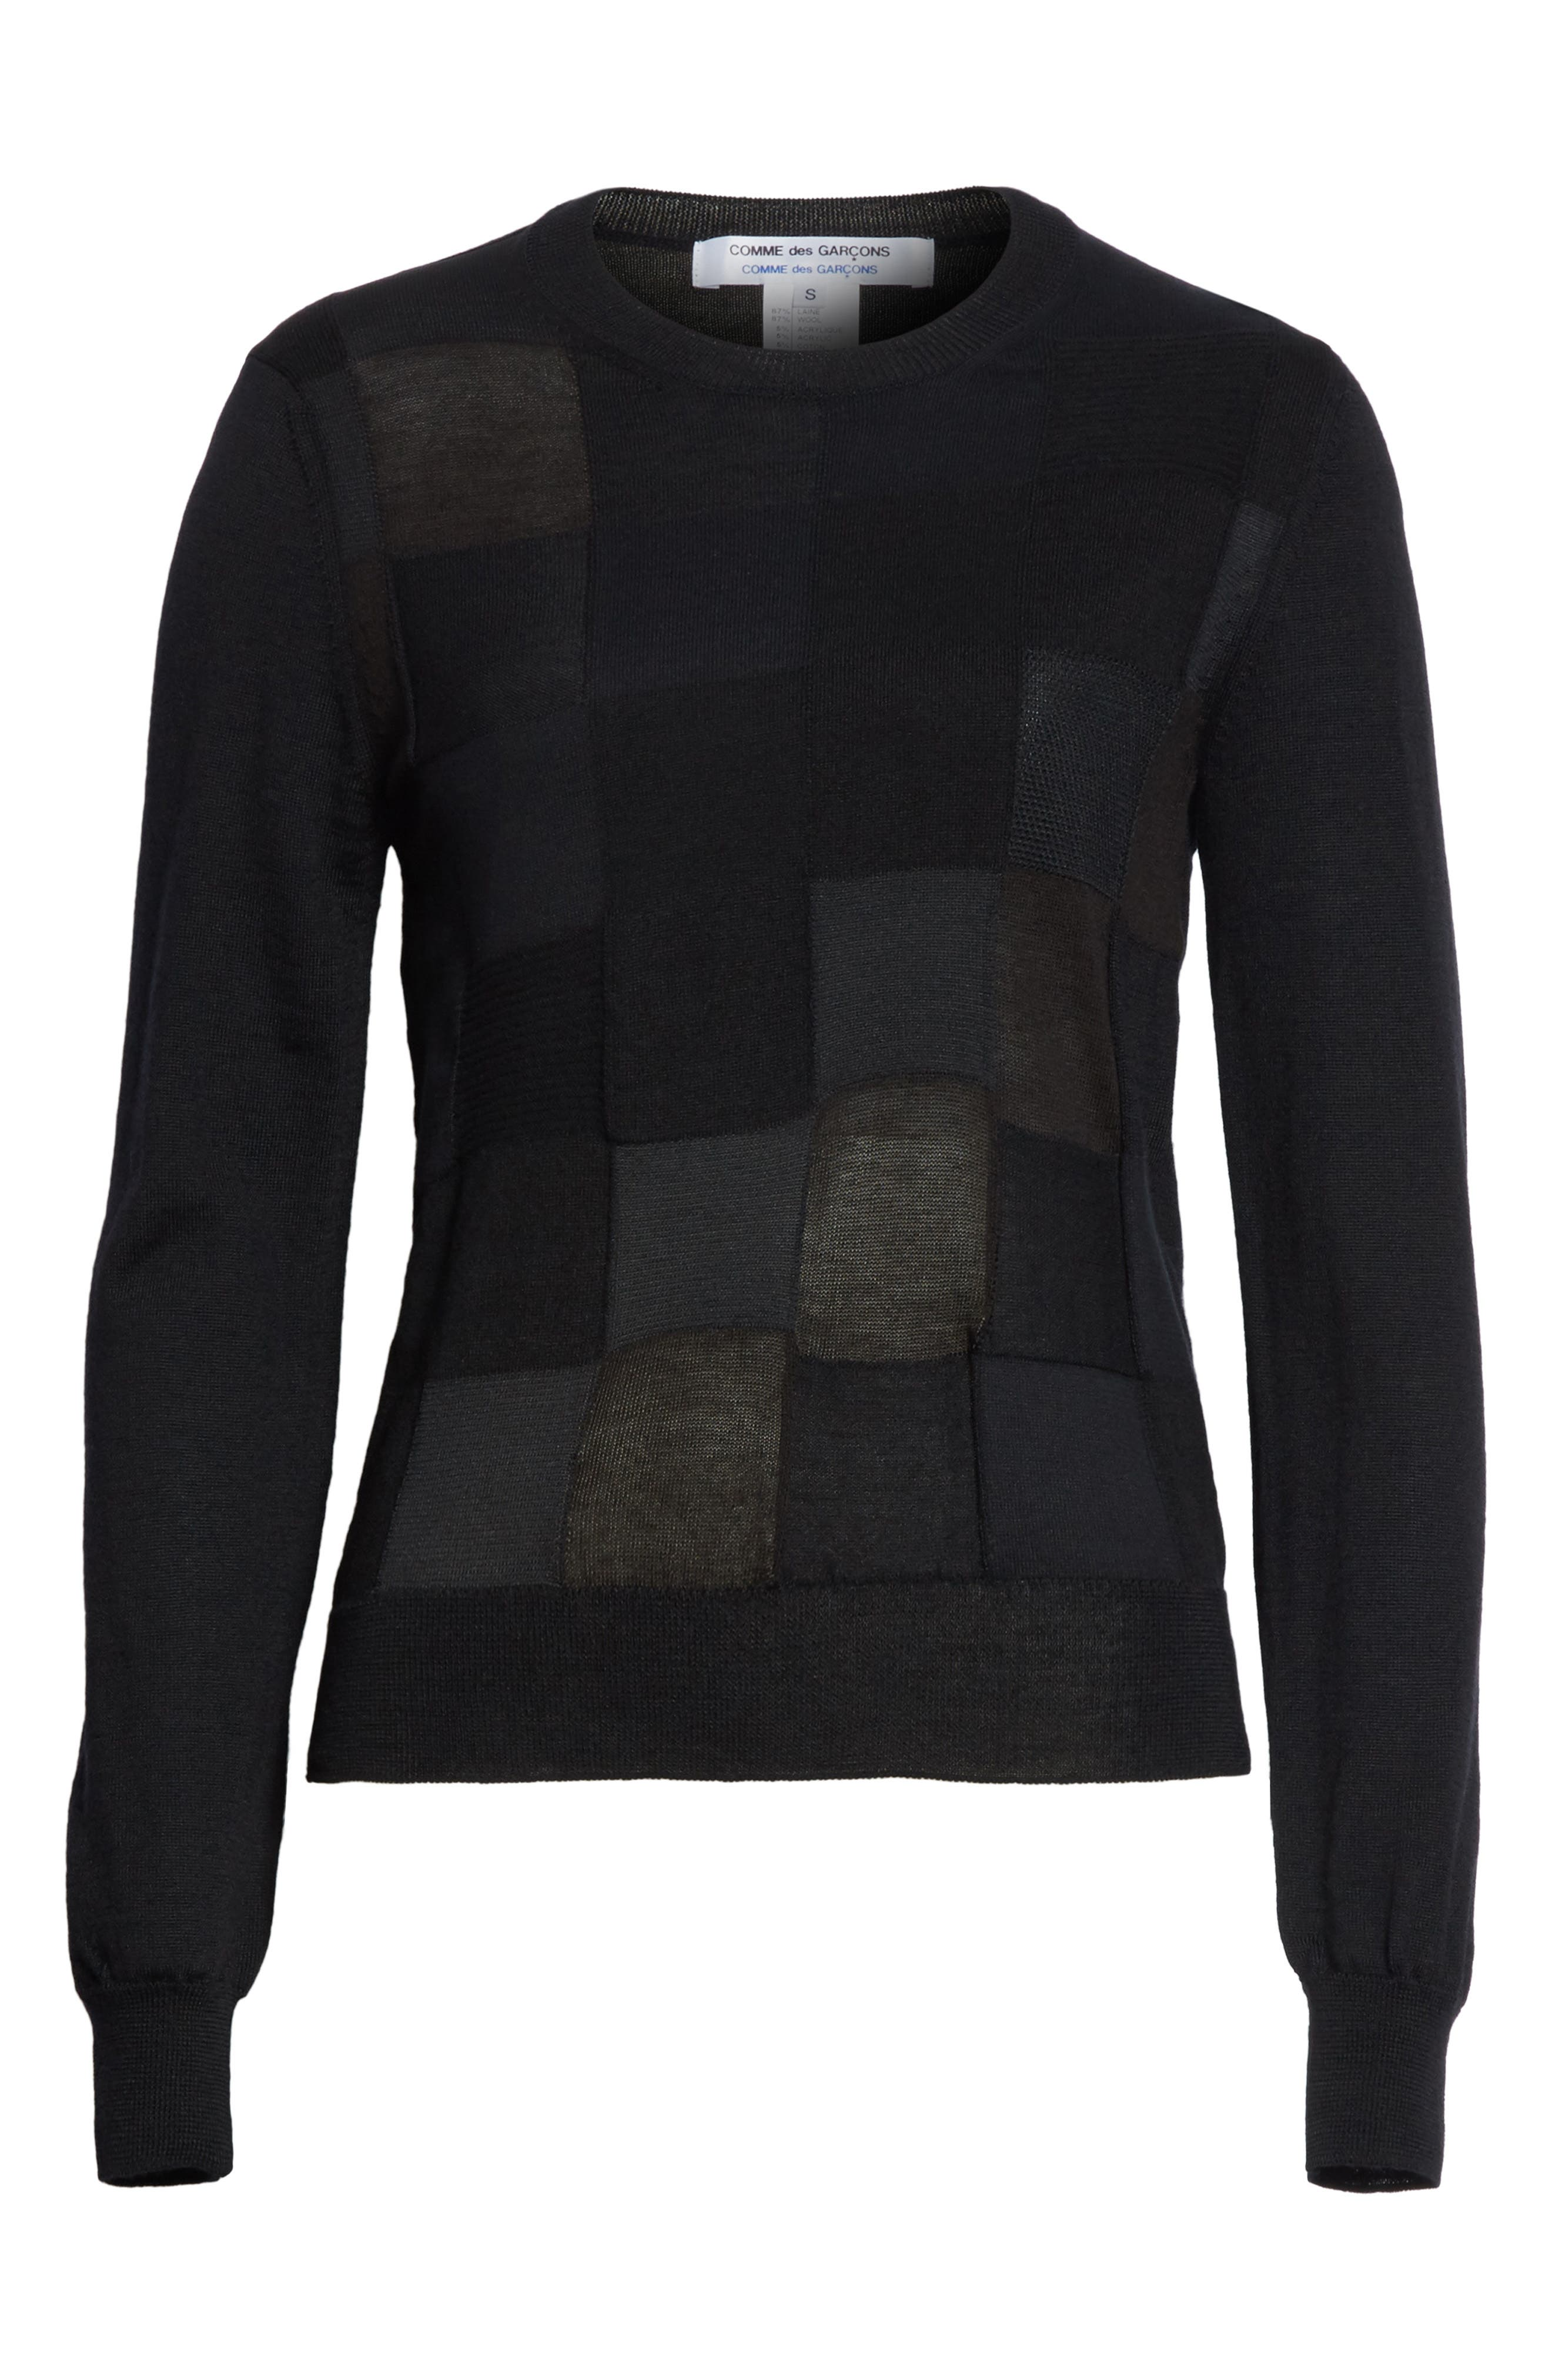 Checkered Knit Sweater,                             Alternate thumbnail 6, color,                             Black